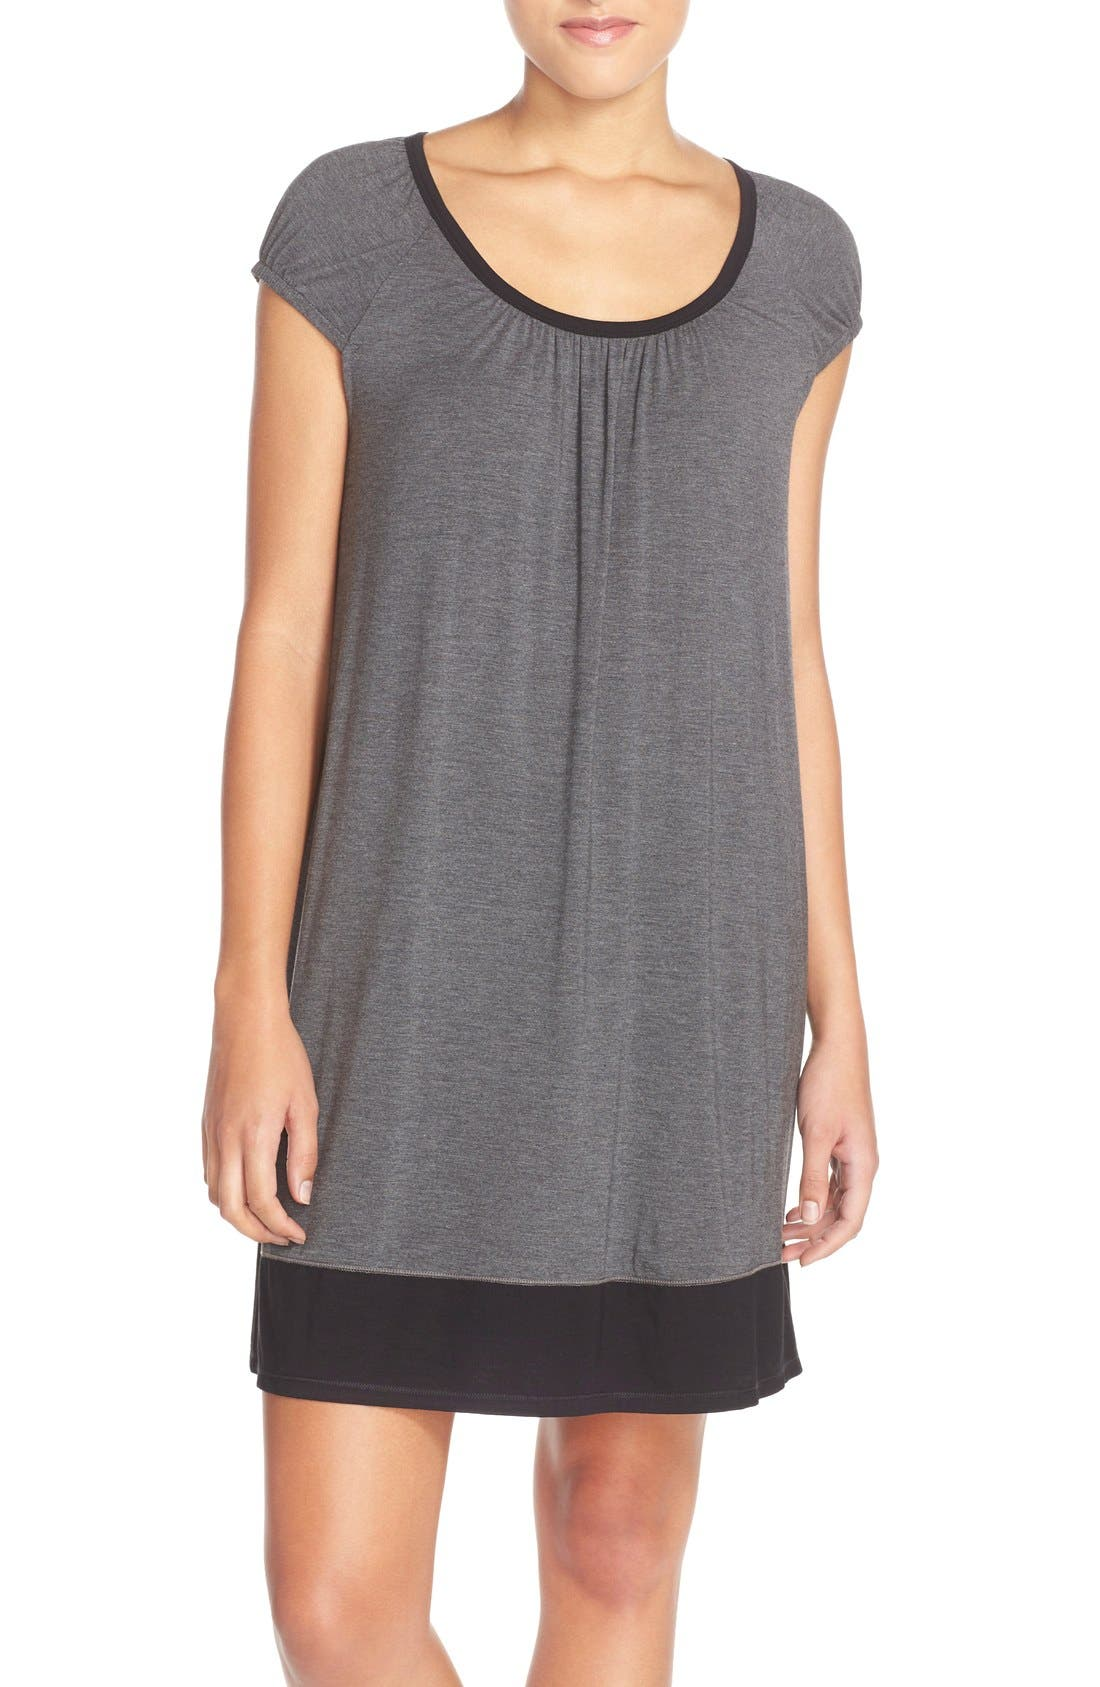 DKNY 'Urban Essentials' Stretch Modal Sleep Shirt